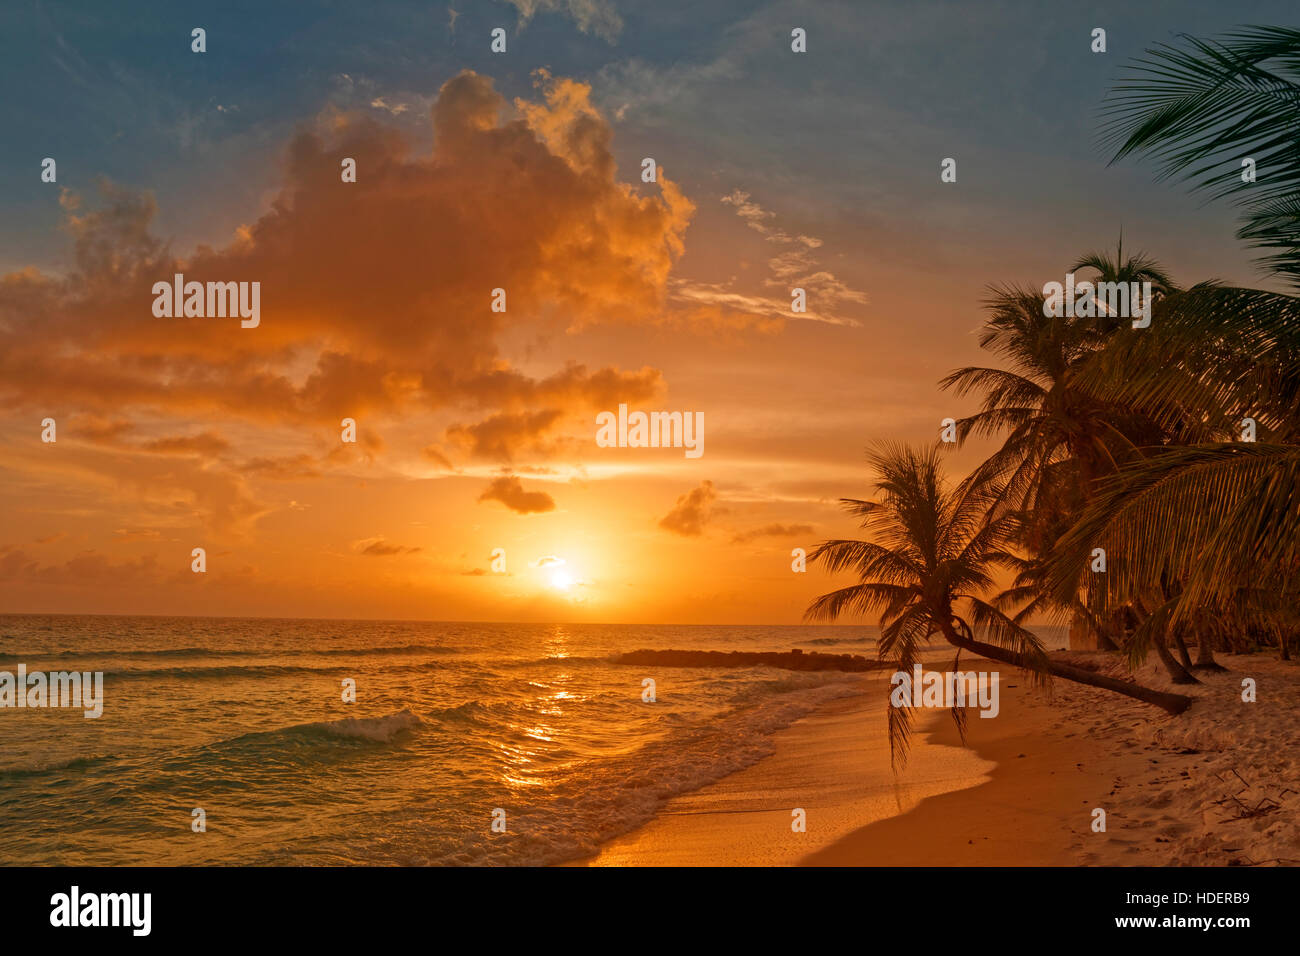 Sunset at Dover Beach, St. Lawrence Gap, South Coast, Barbados, Caribbean. - Stock Image